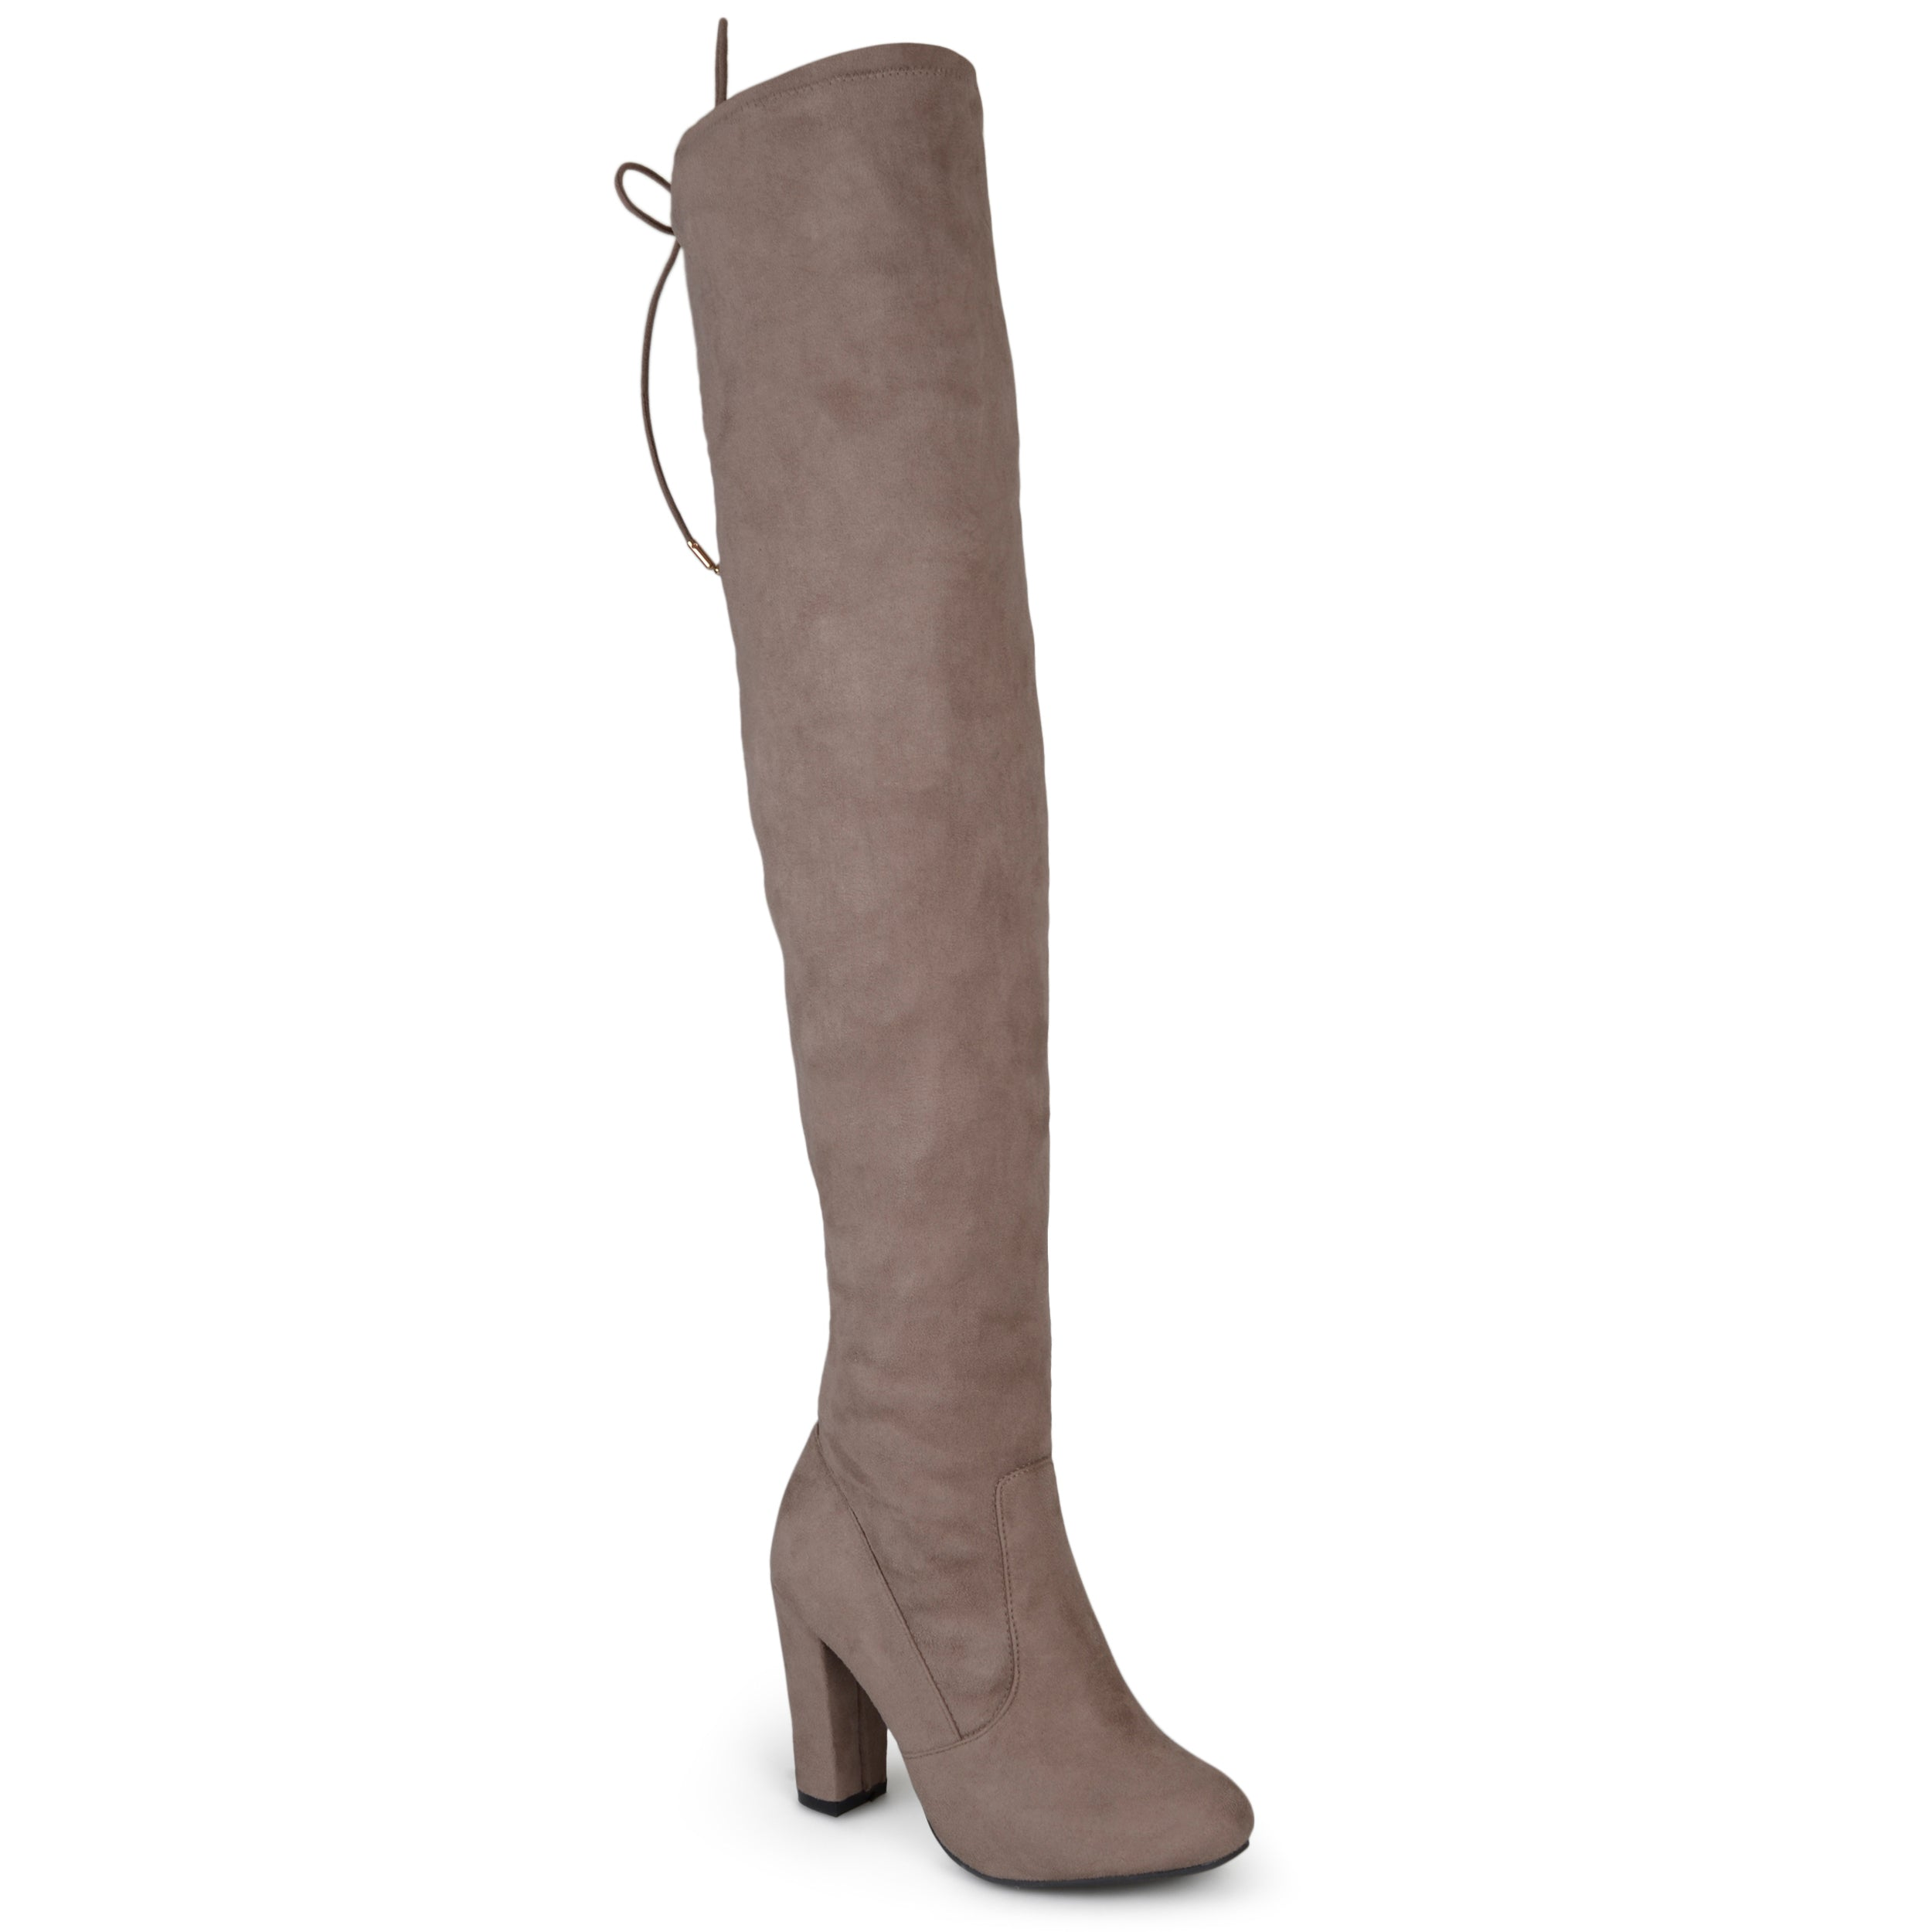 0e10bcc08c6 Womens Over-the-knee High Heel Faux Suede Boots